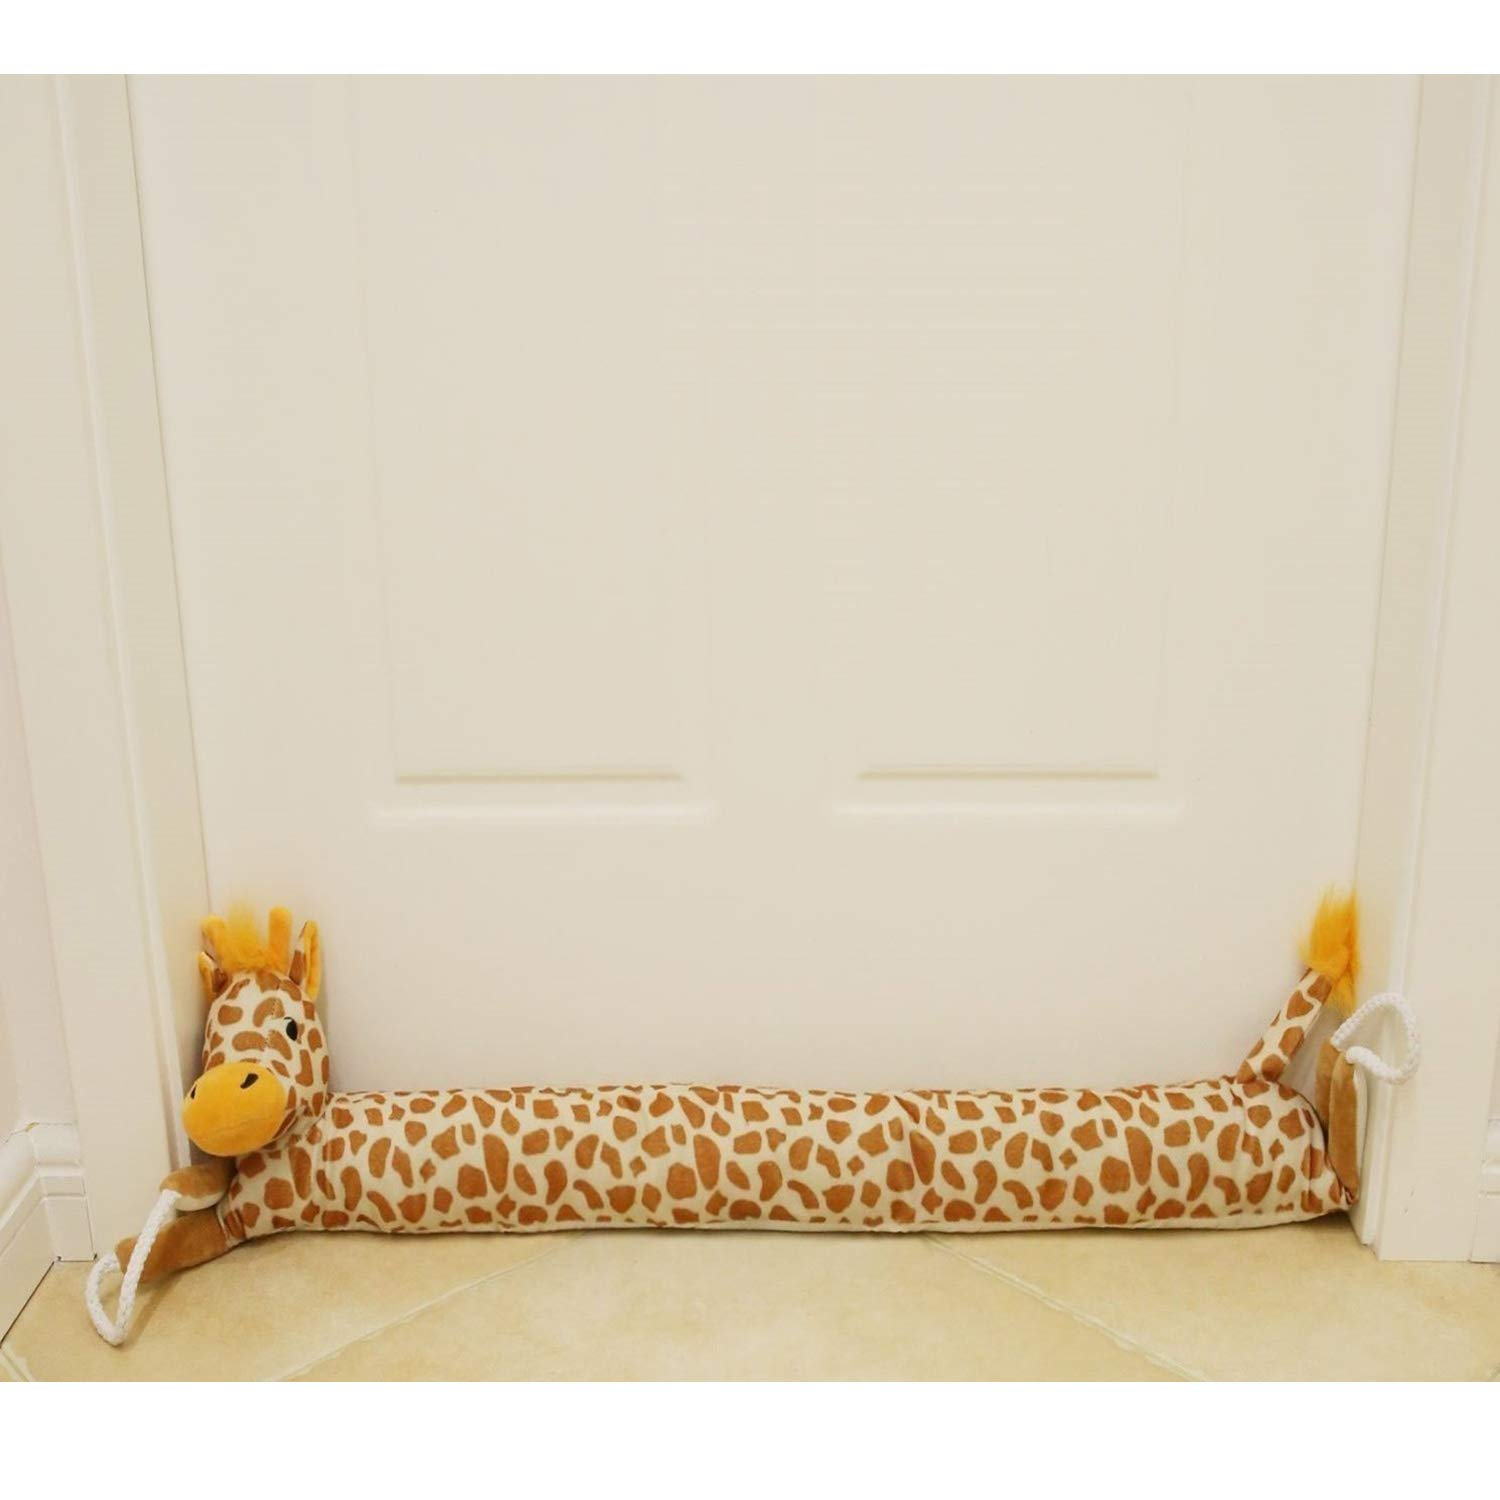 36'' Giraffe Under Door Draft Stopper (1.8 lbs) Draft Dodger Doors Snake with Hanging Cord, Save Energy & Money, Keep Heat in by MAXTID